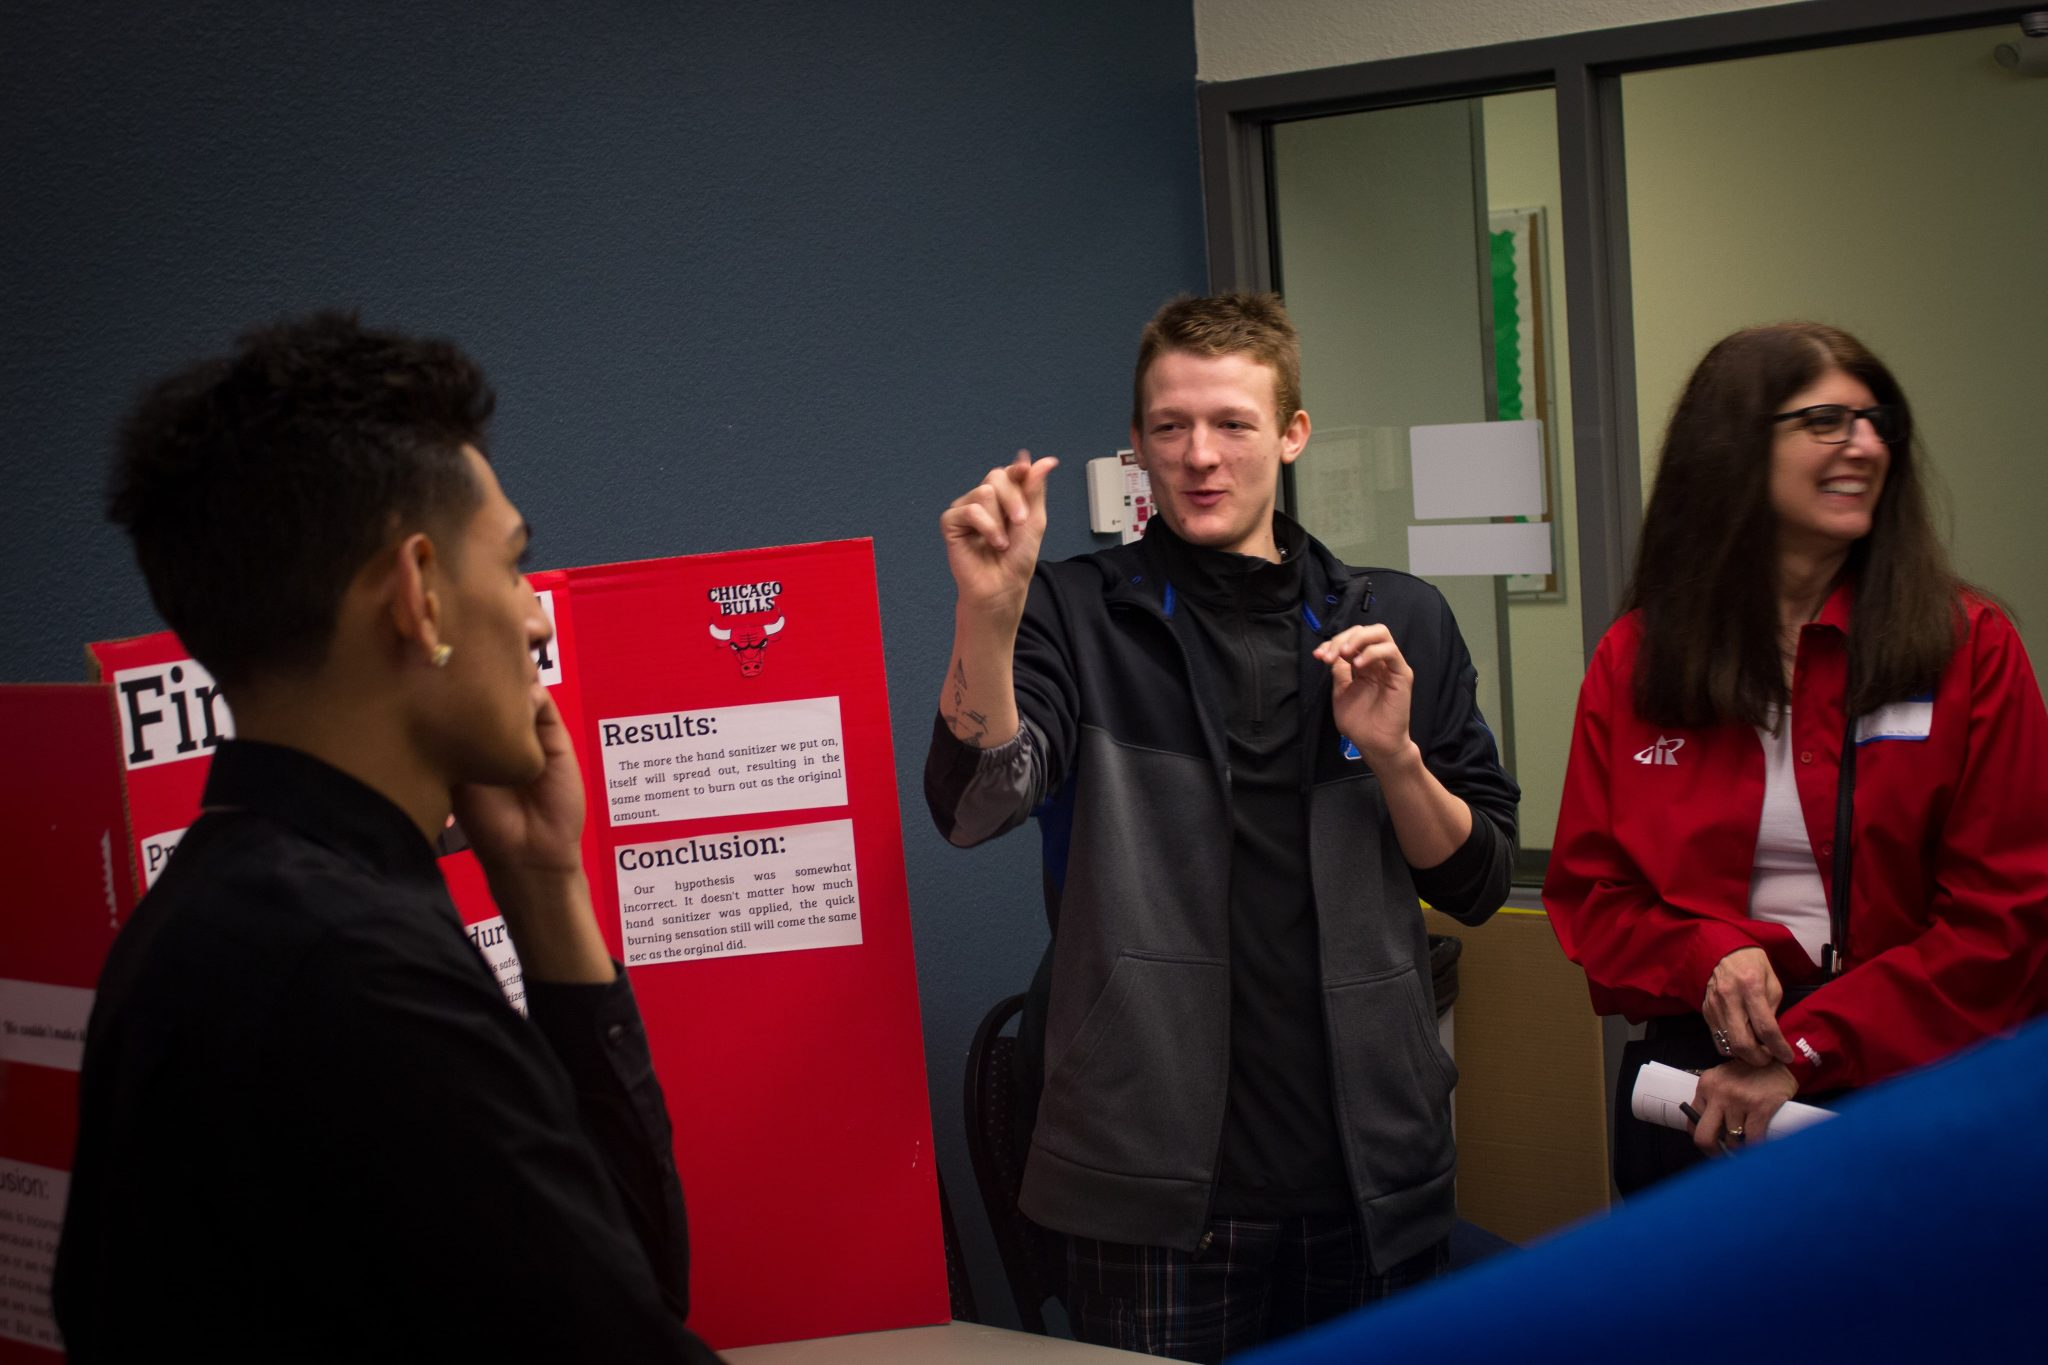 Students and staff interact with science projects at the science fair